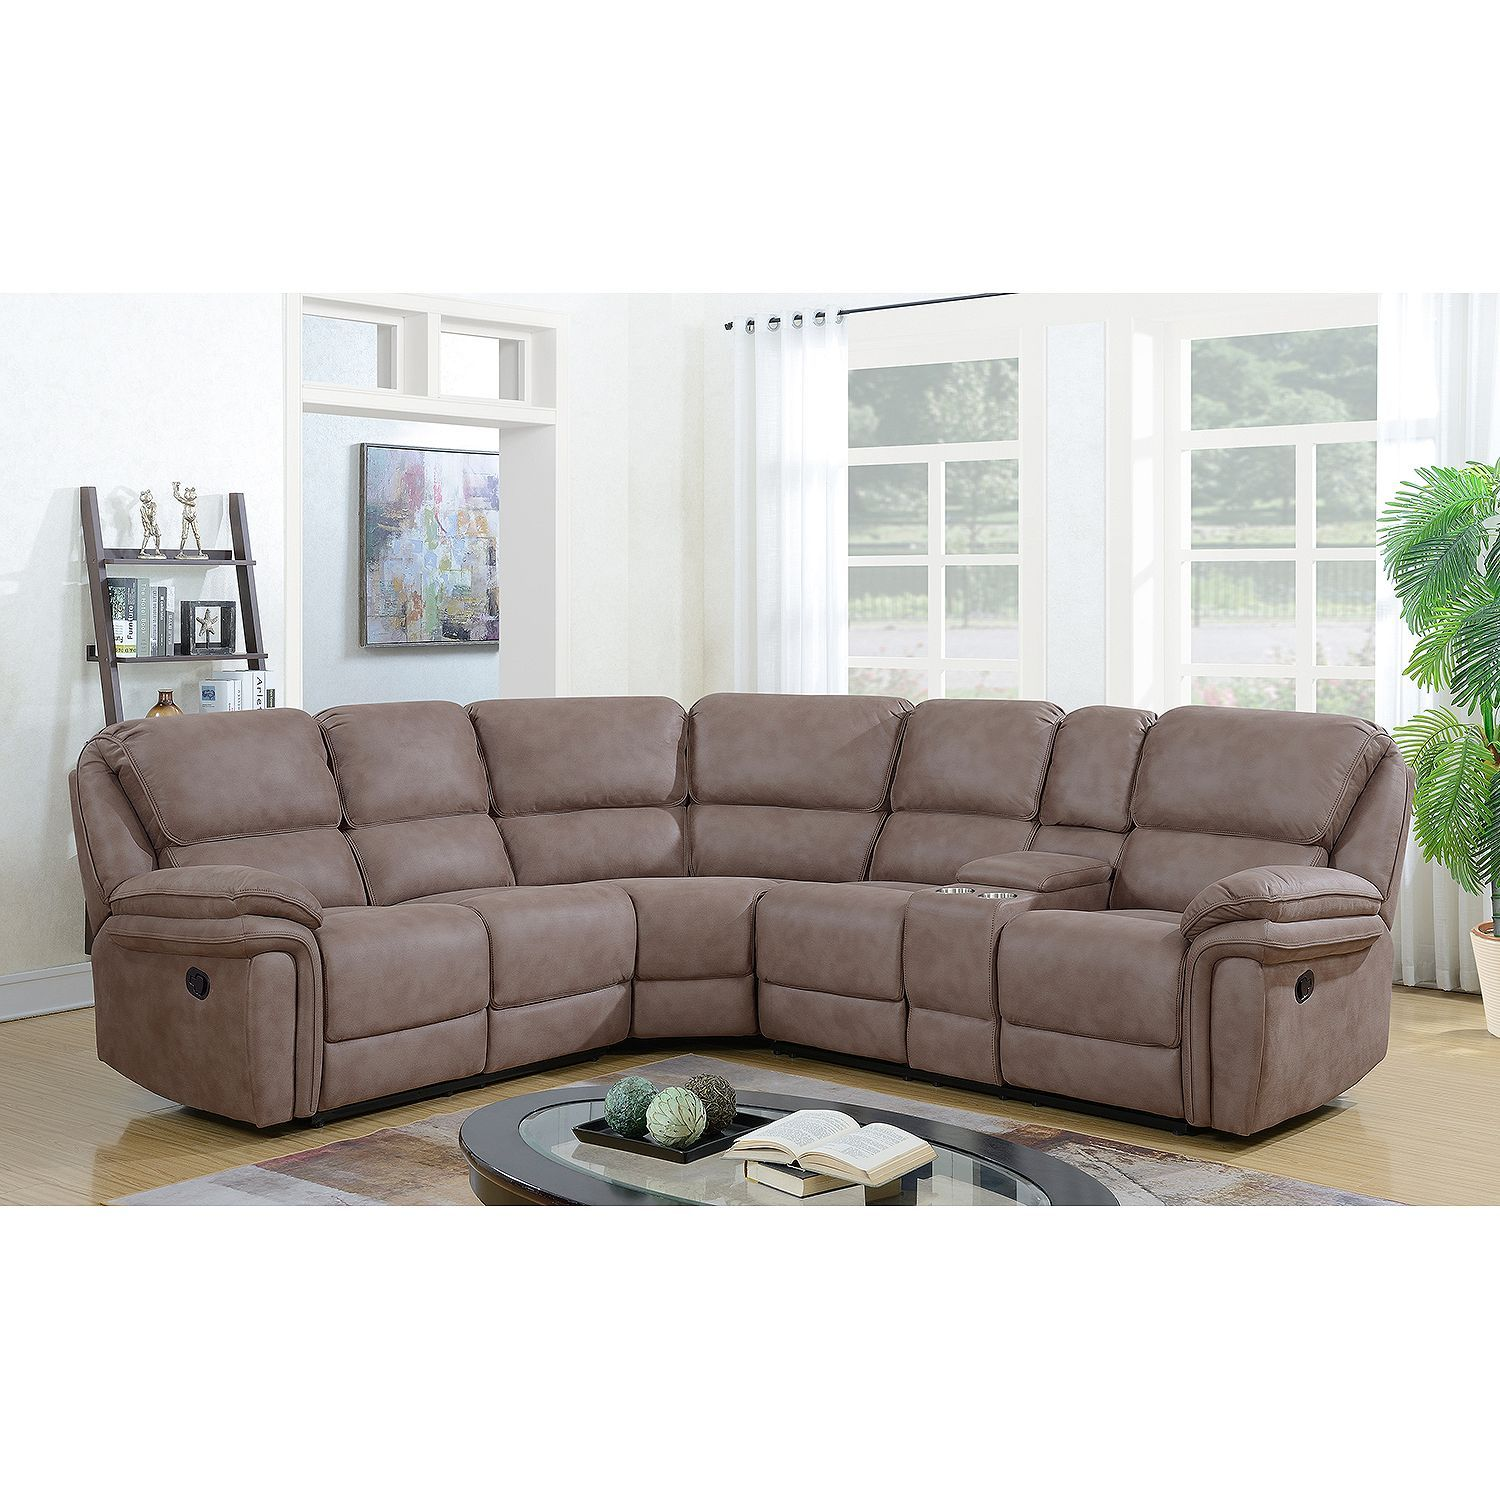 Magnificent Langston Complete 3 Piece Reclining Sectional Sams Club Unemploymentrelief Wooden Chair Designs For Living Room Unemploymentrelieforg